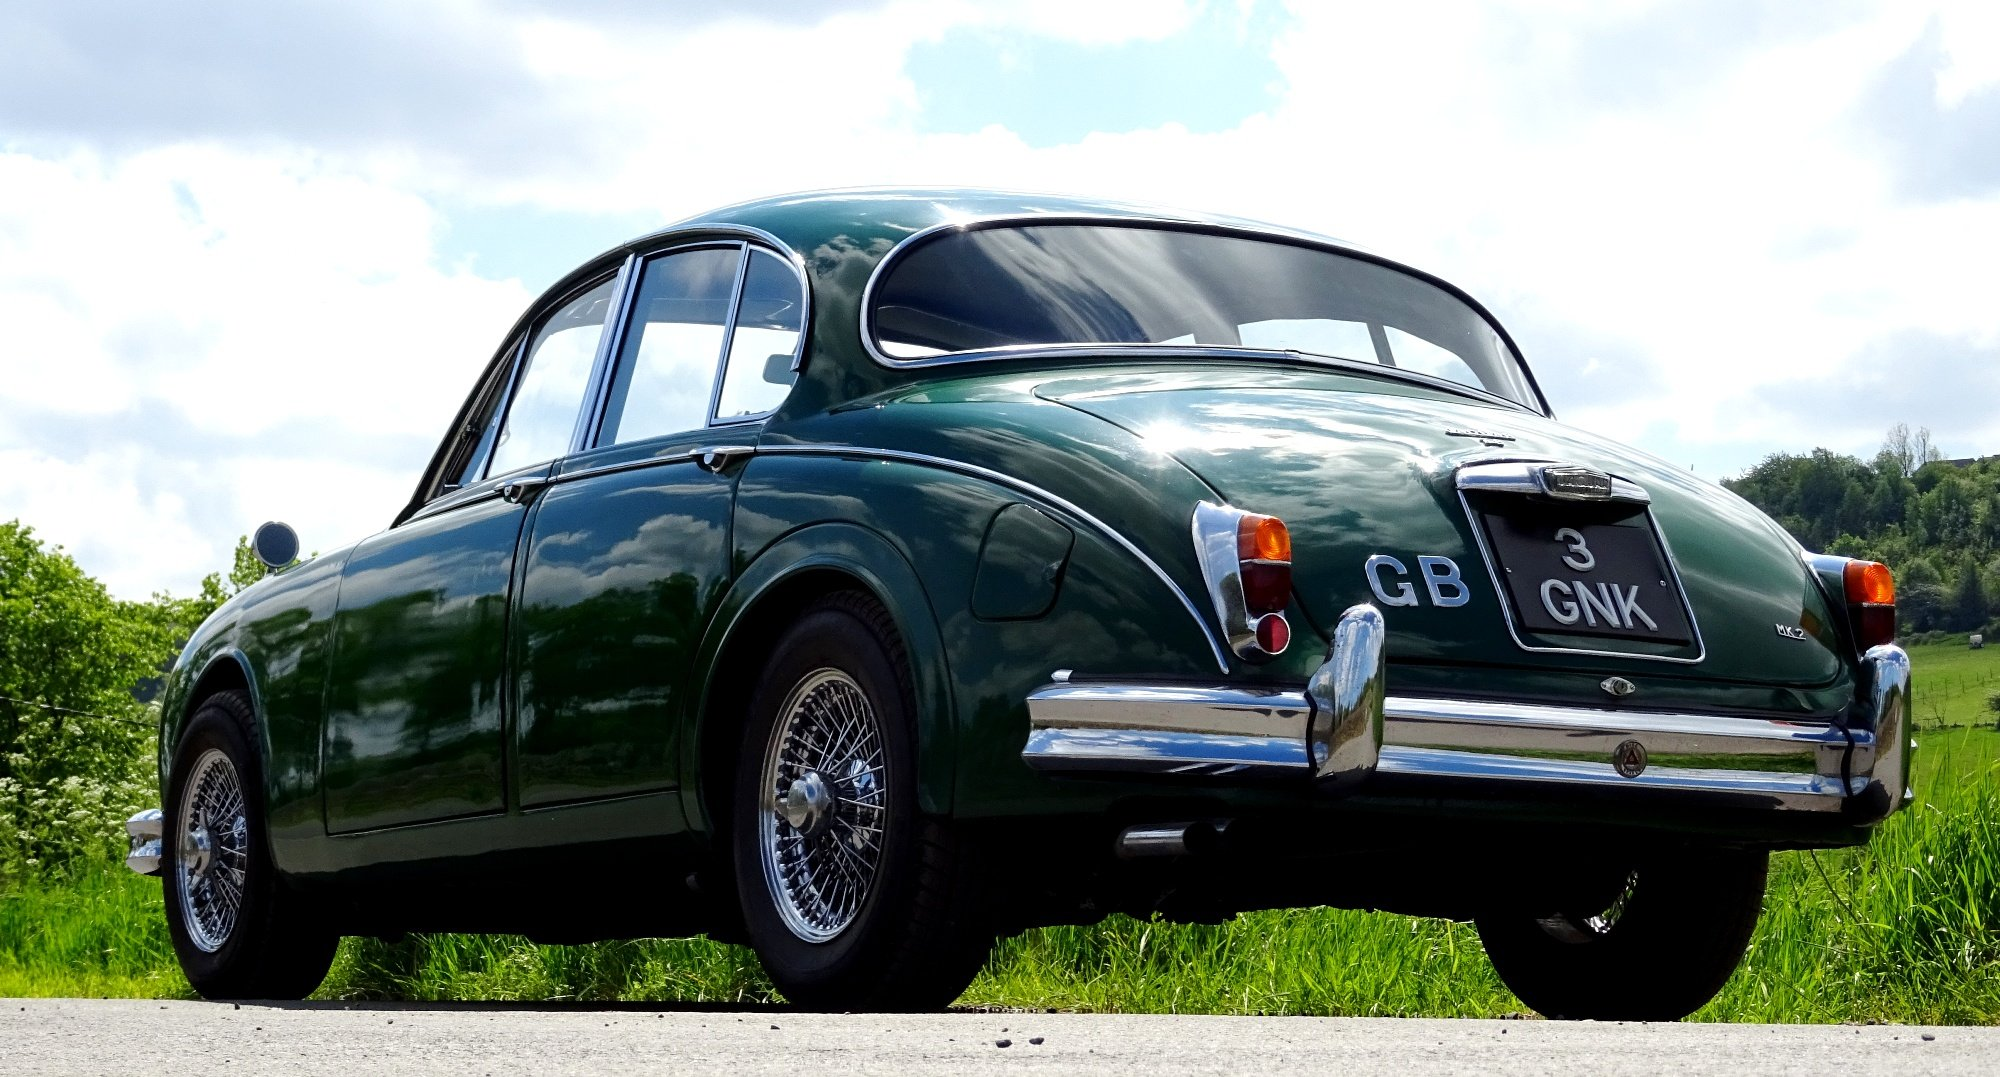 1961 STUNNING JAGUAR MK2 3.8 BRITISH CLASSIC CAR For Sale (picture 4 of 6)